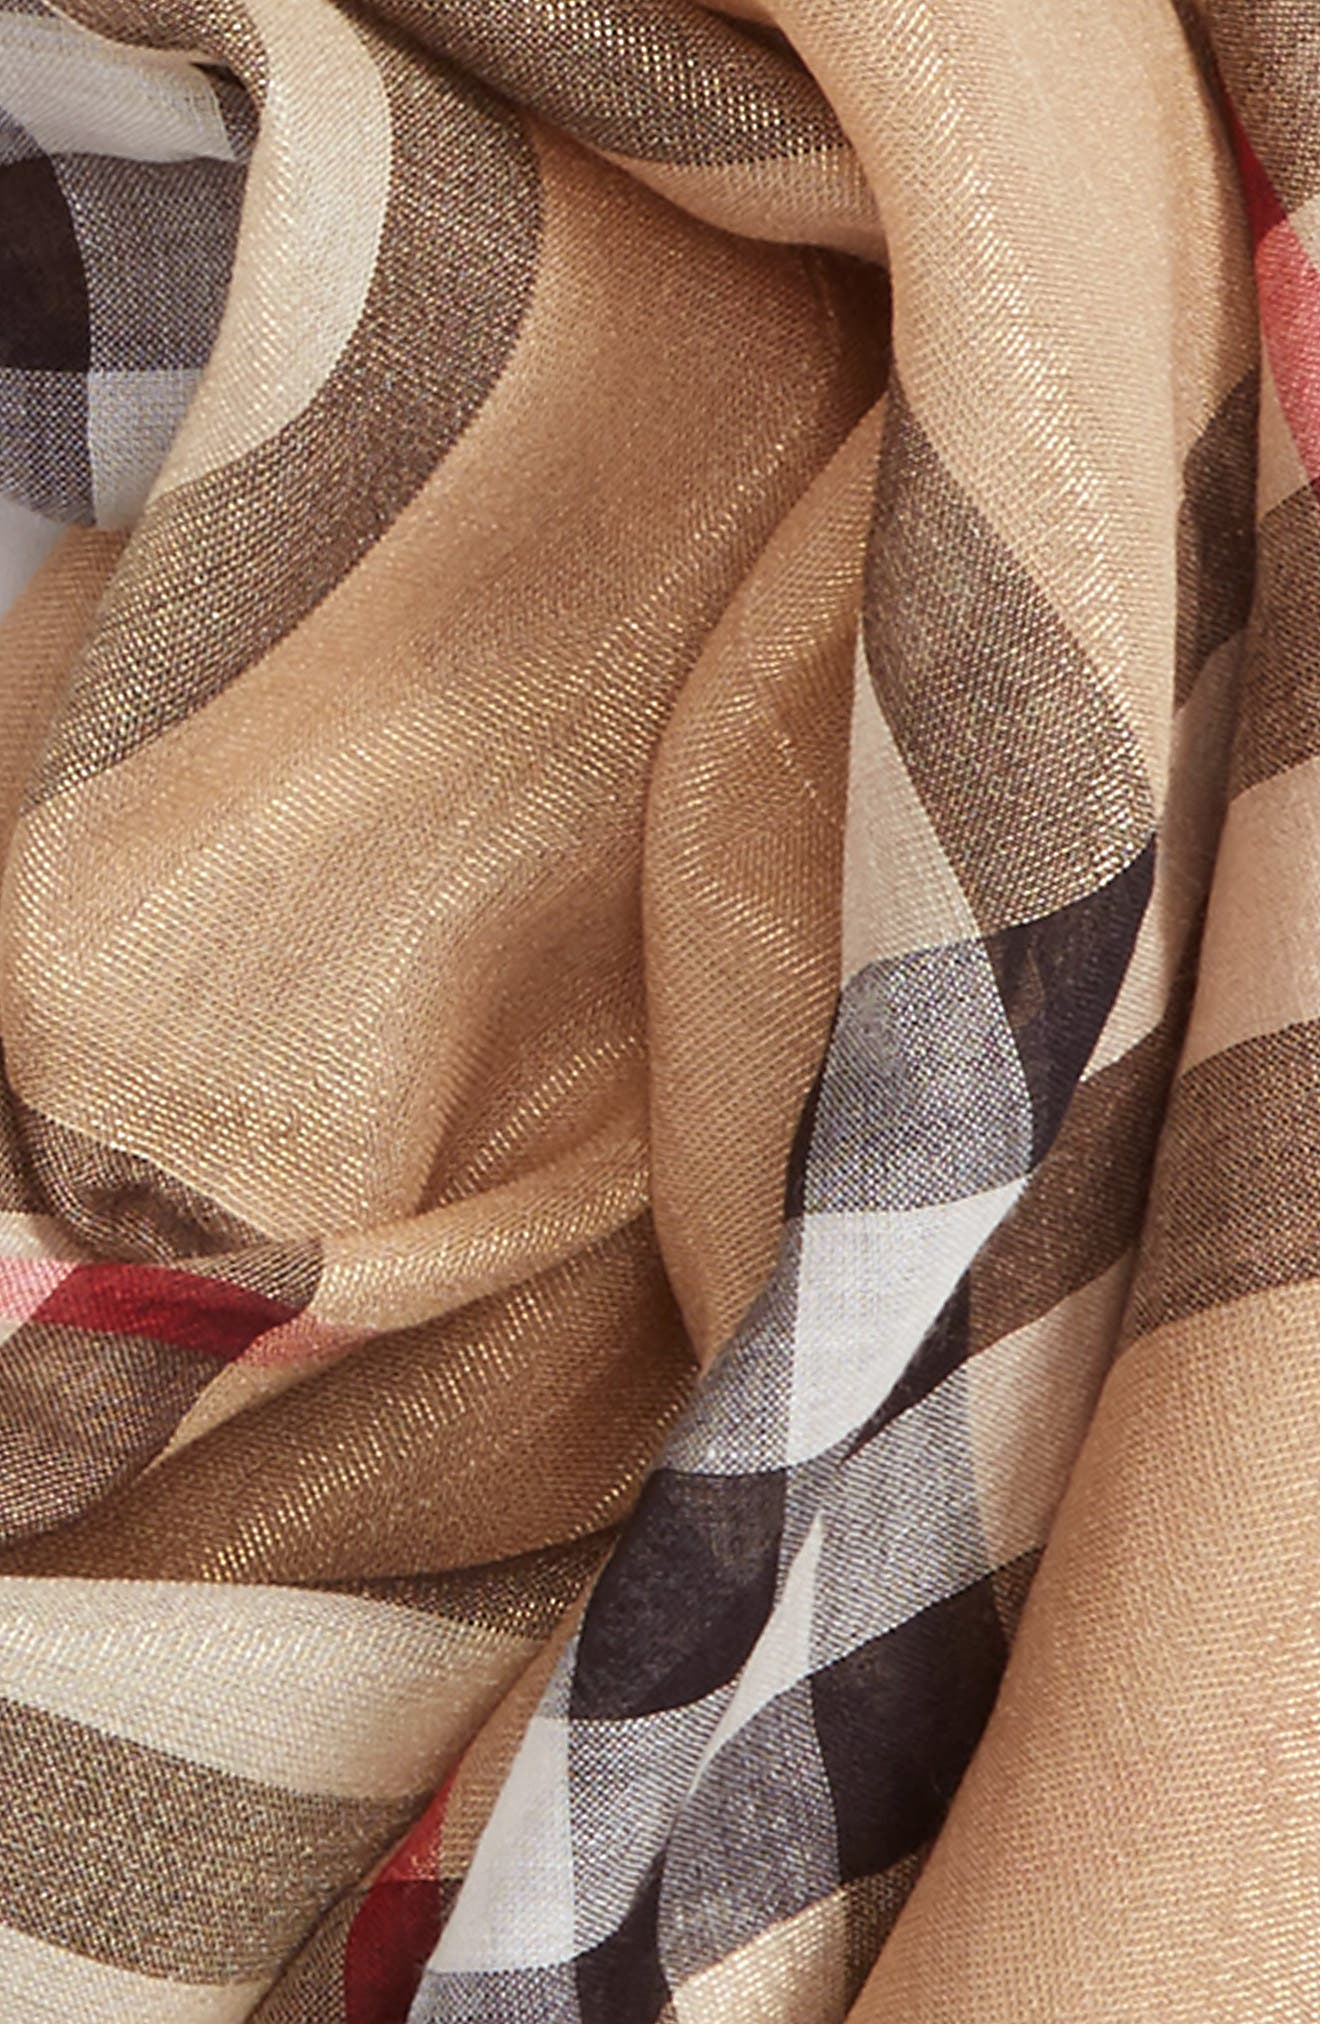 BURBERRY,                             Giant Check Scarf,                             Alternate thumbnail 5, color,                             250